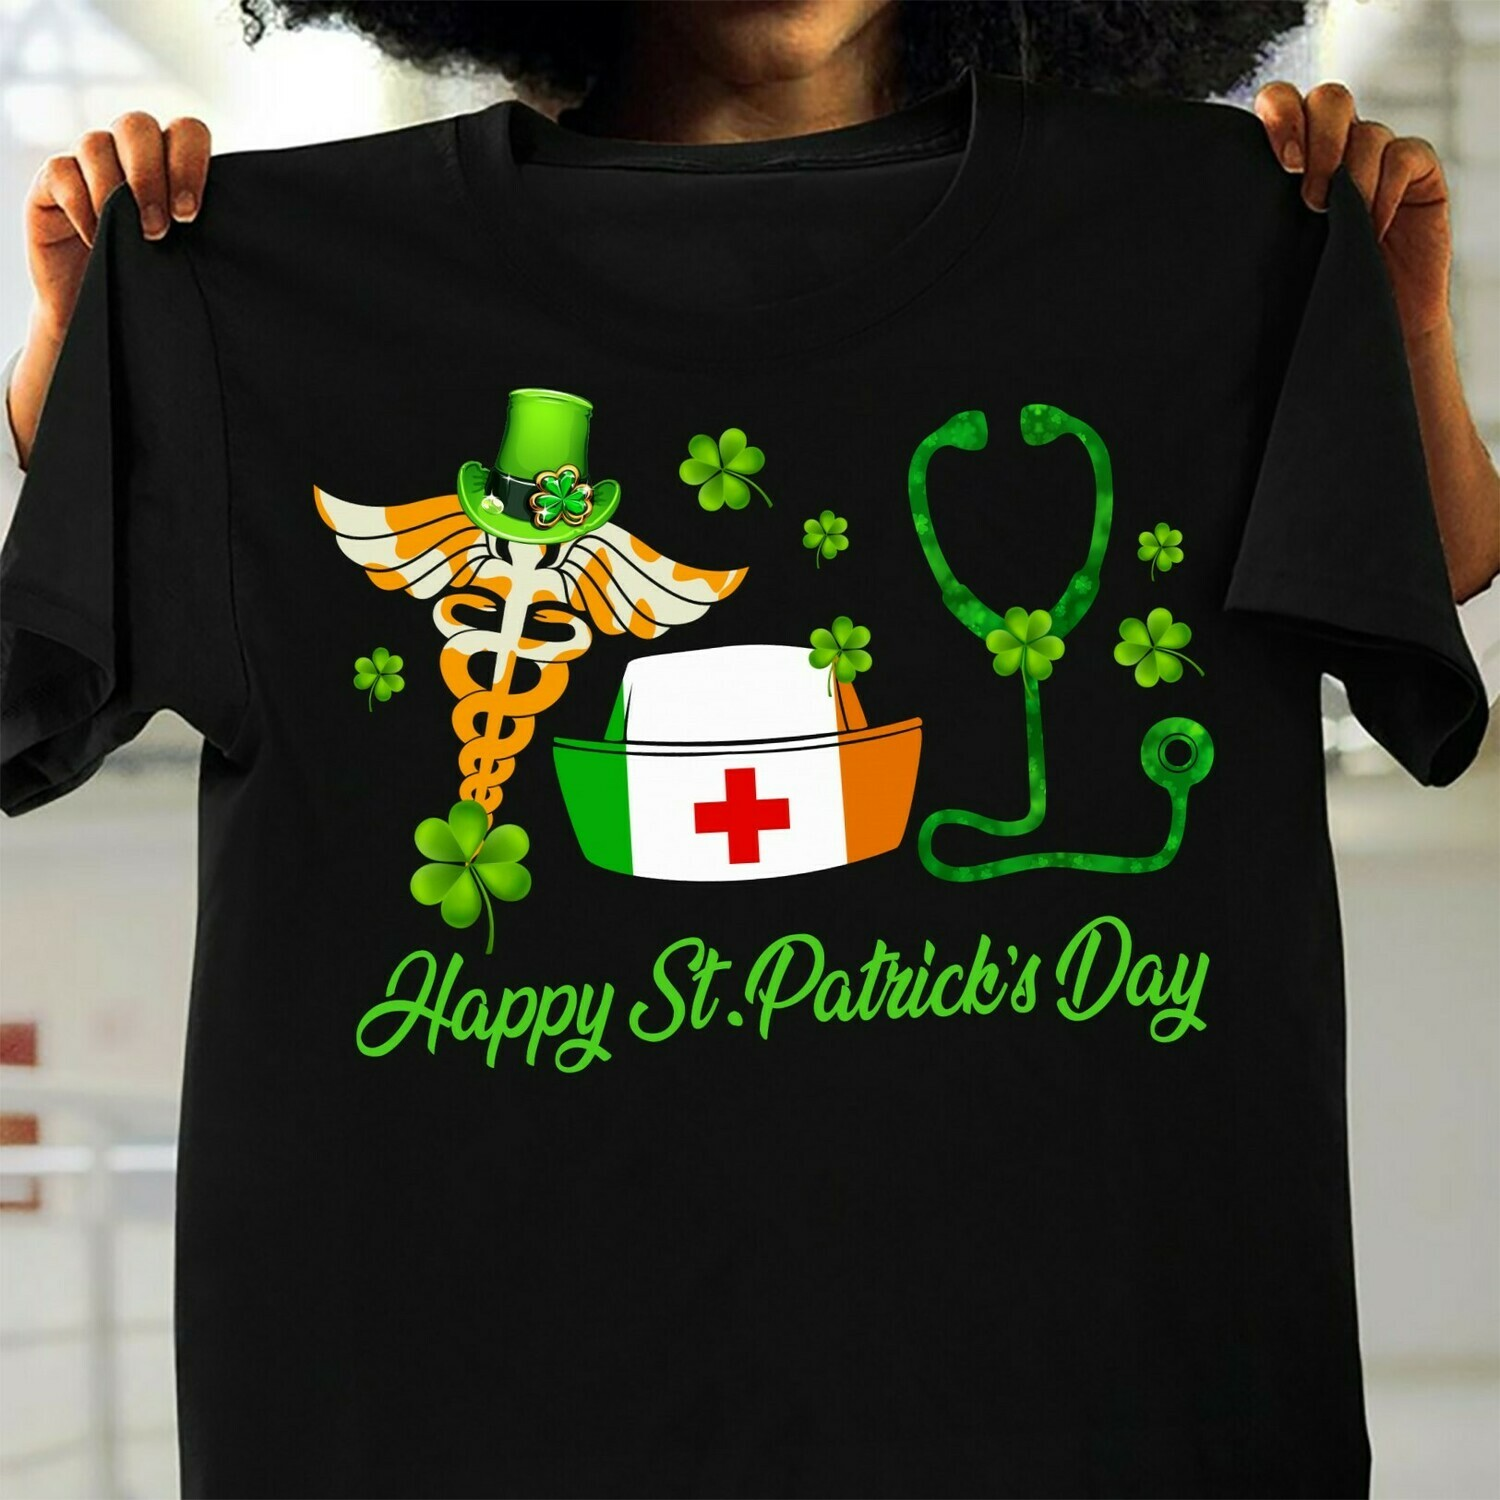 Nurse Duty happy St Patrick's day,Stethoscope Hat Nurse and Shamrock Leaf Clover Luck Charm of the Irish  T-Shirt Hoodie Sweatshirt Sweater Tee Kids Youth Gifts Jolly Family Gifts